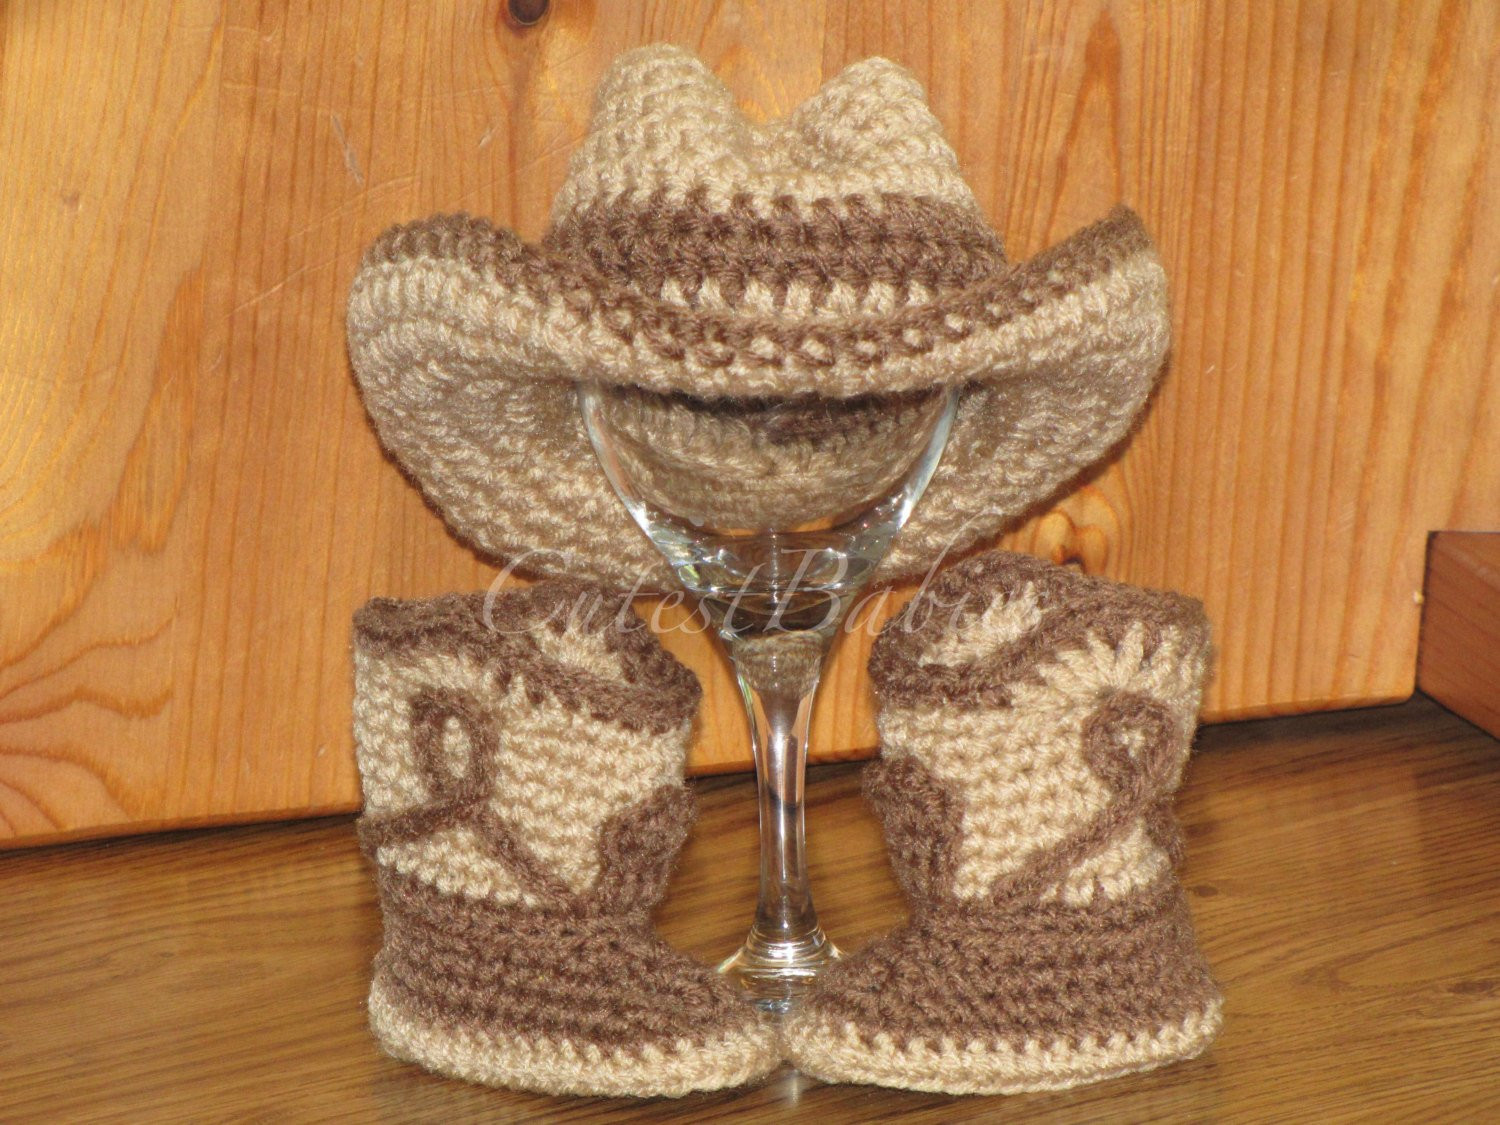 Crochet Cowboy Boots Beautiful Newborn Baby Crochet Cowboy Hat & Boots Prop Of Marvelous 49 Pictures Crochet Cowboy Boots